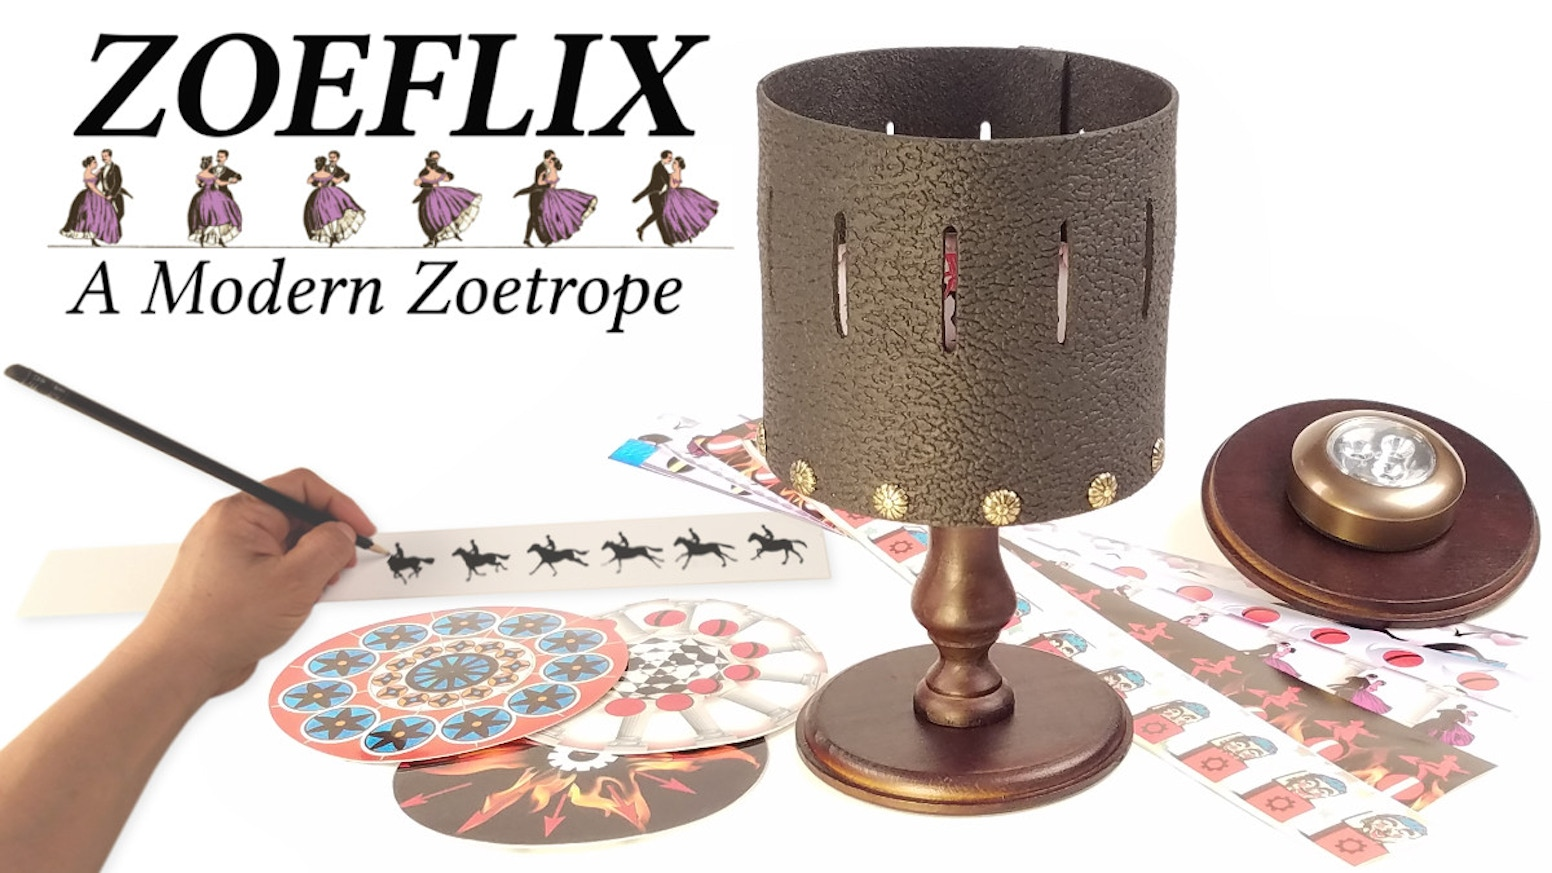 ►Mesmerizing animation device ►Draw your own endless cartoons ►The beauty and charm of the Zoetrope at home, office, school!